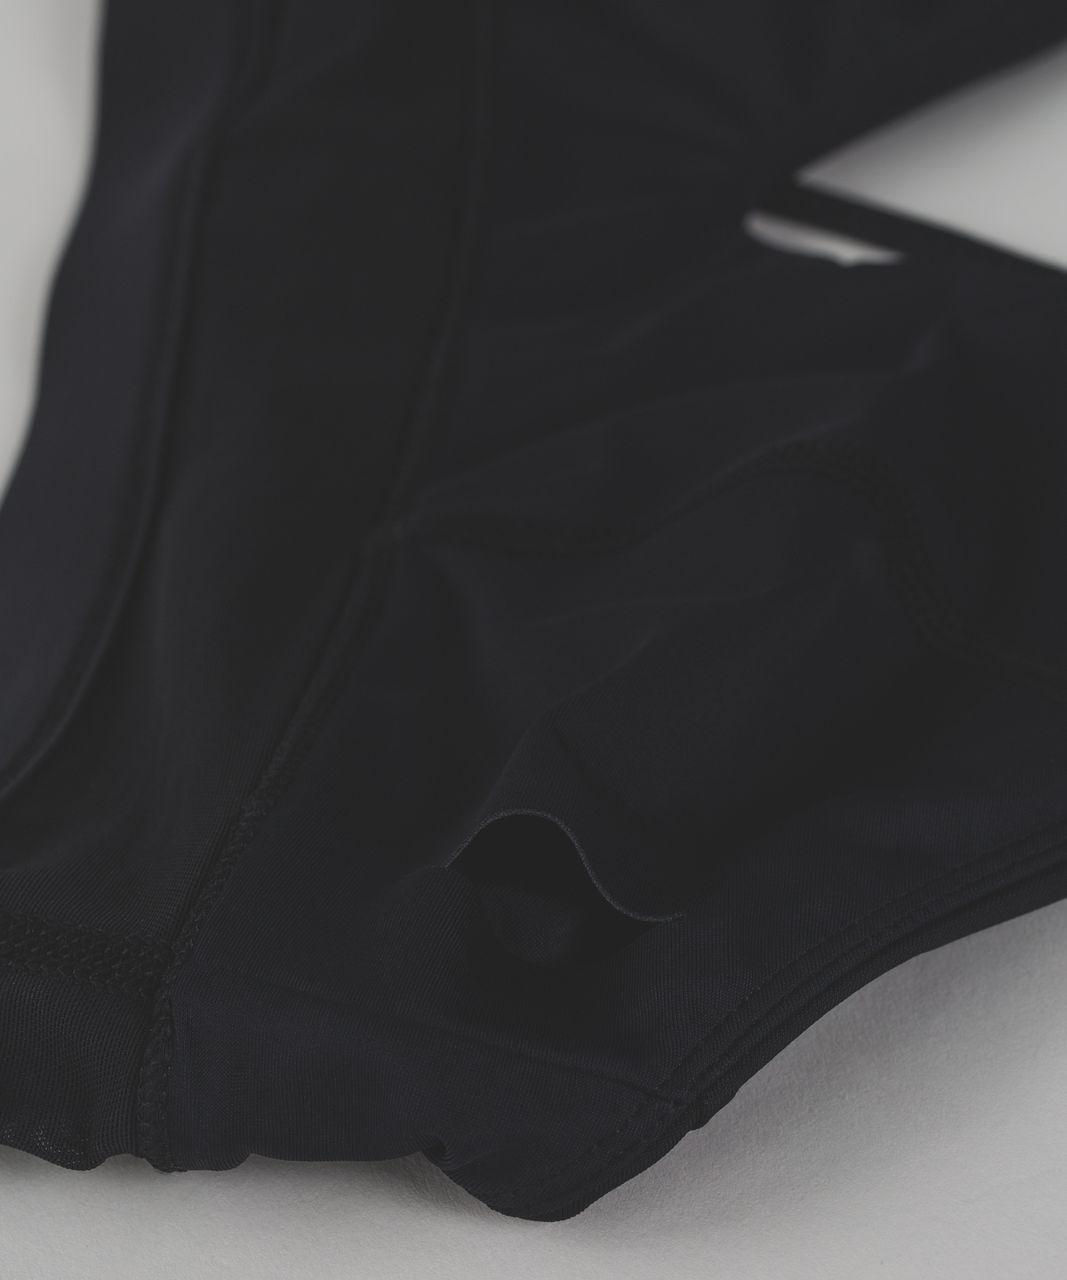 Lululemon Go With The Flow Top - Black